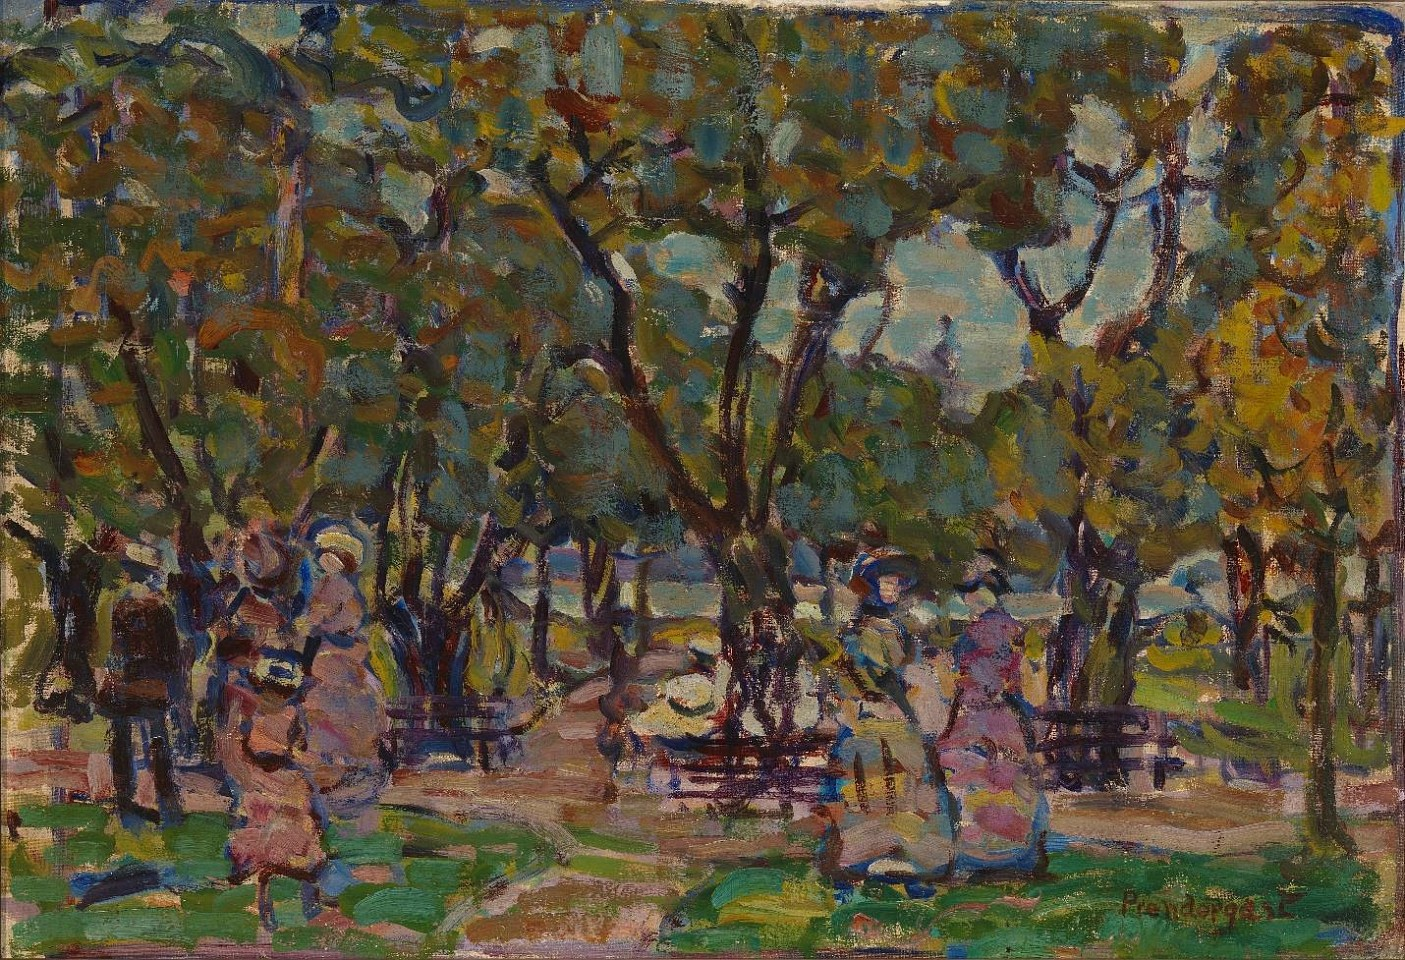 Maurice Prendergast ,   Figures under the Trees  ,  c. 1907-10     oil on canvas ,  16 1/8 x 23 1/2 in. (41 x 59.7 cm)